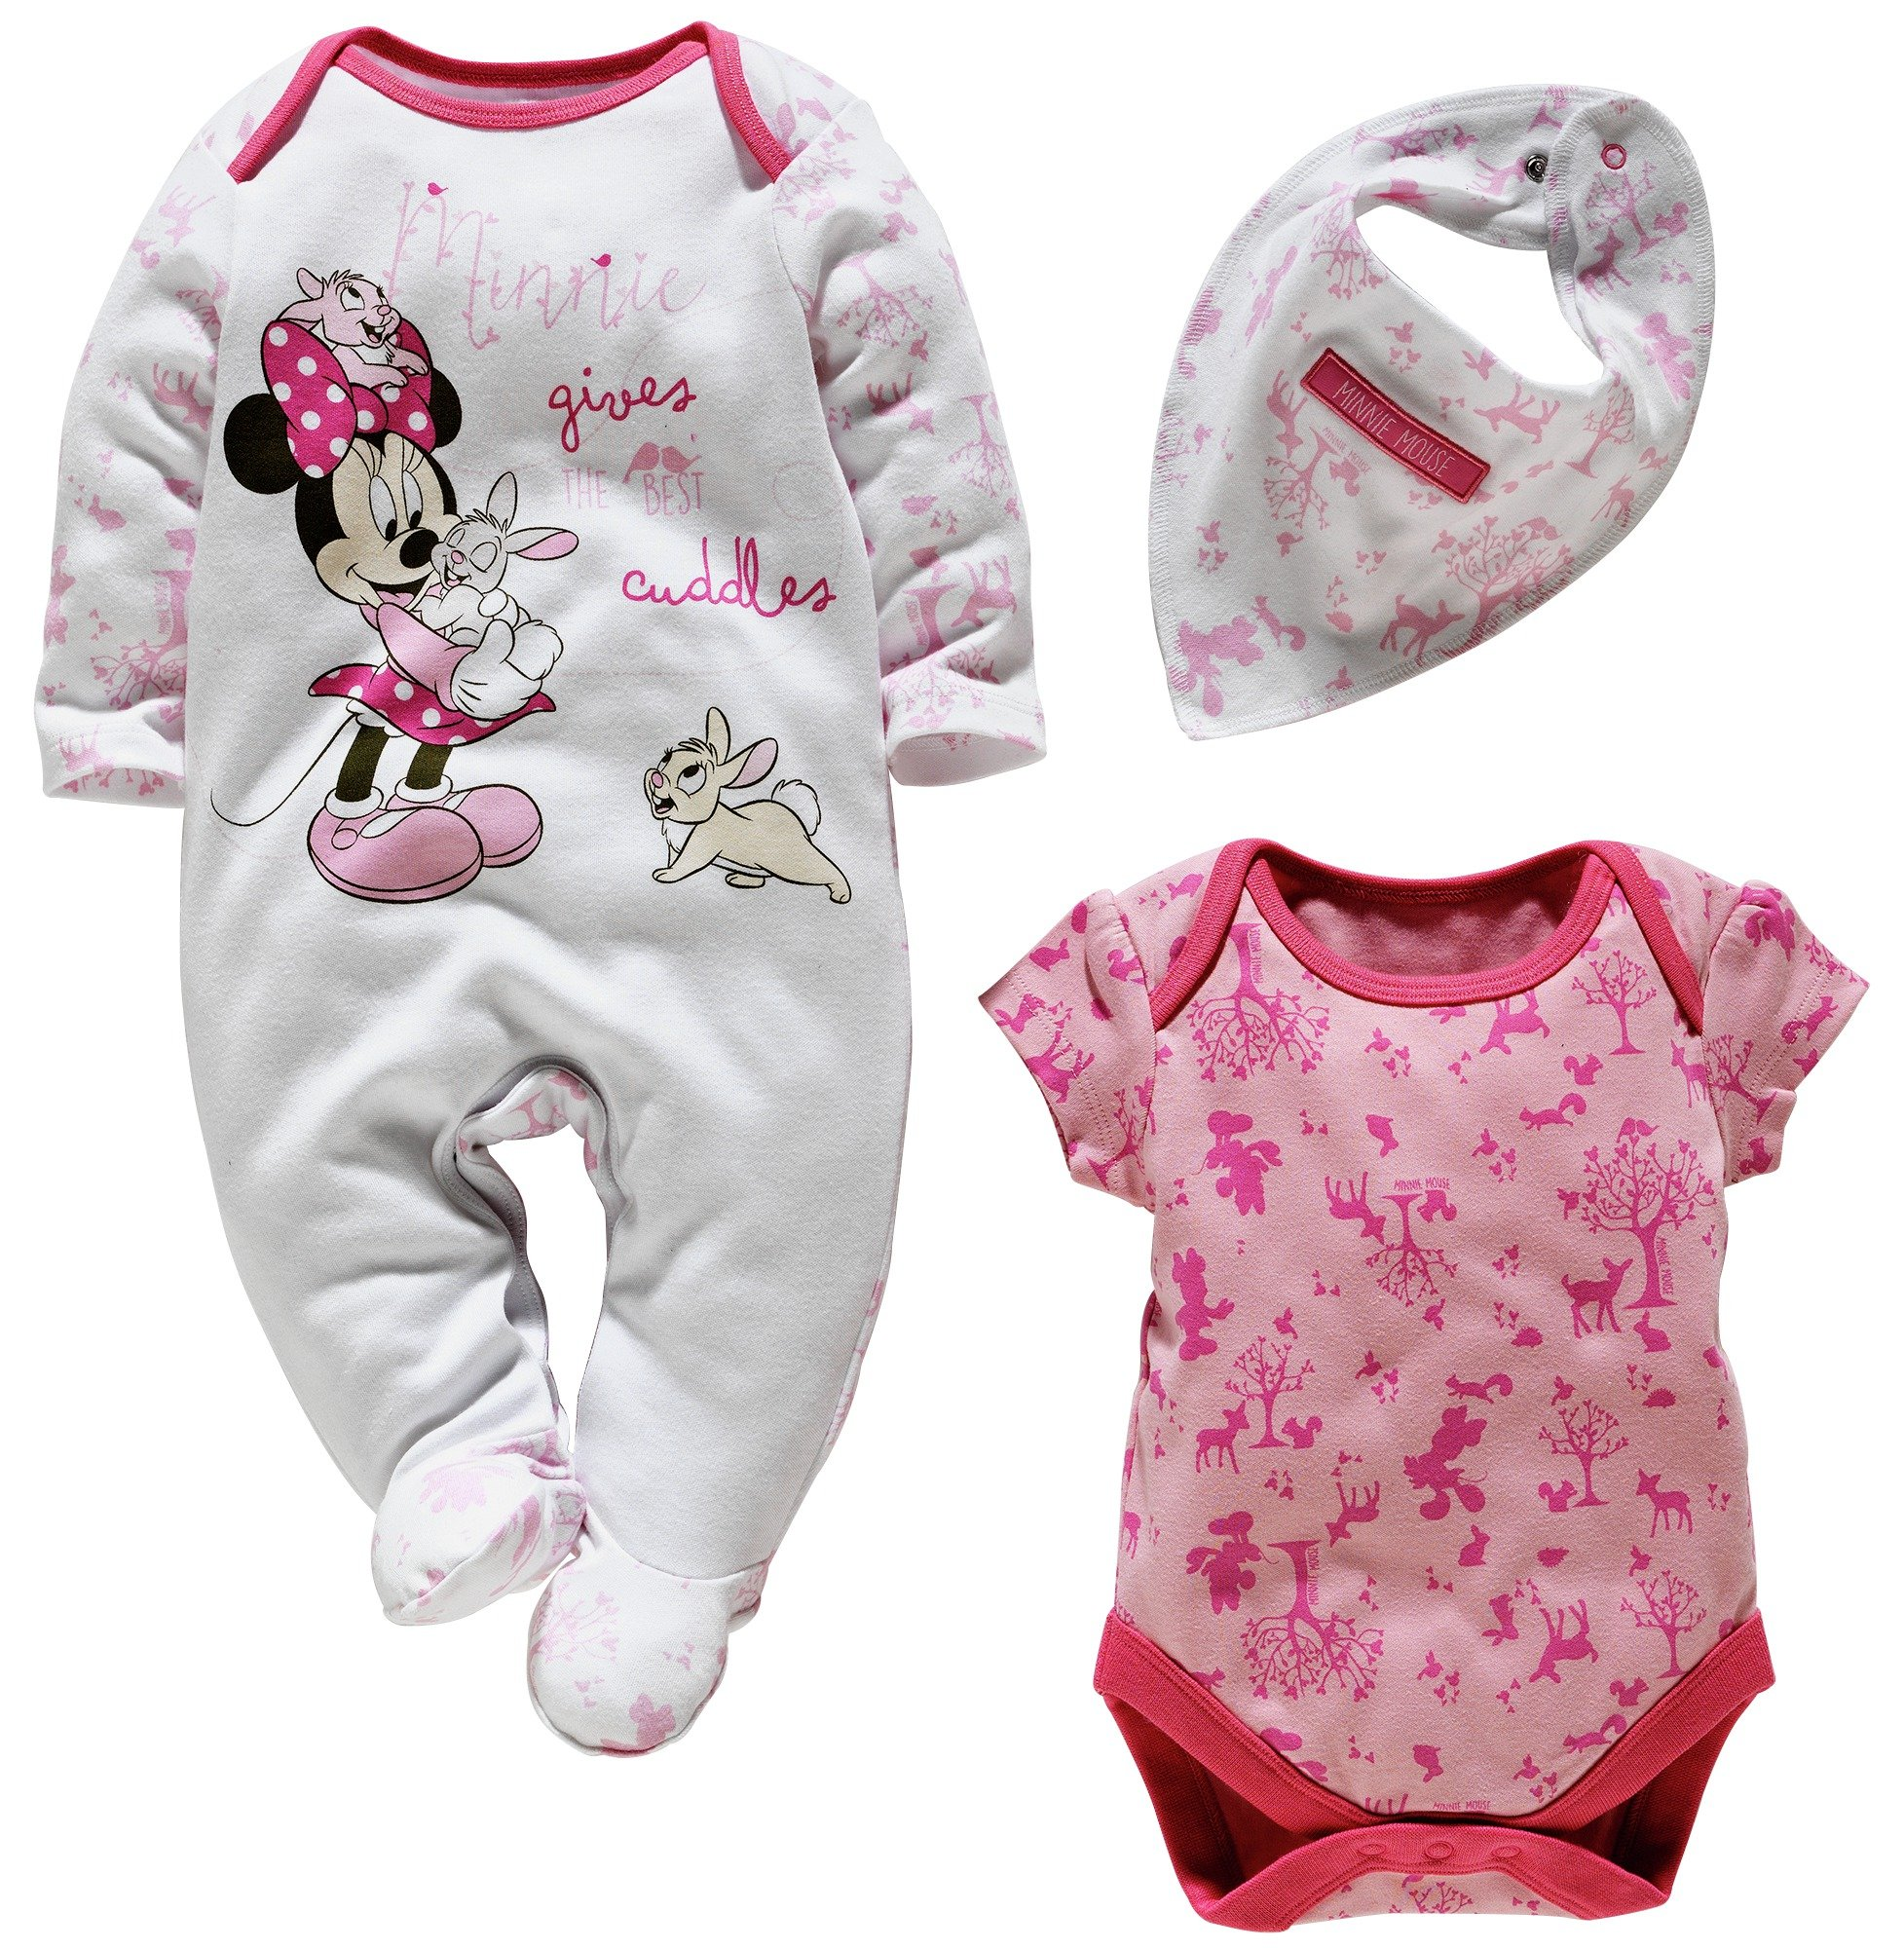 Baby Minnie Mouse Gift Set - 0-3 Months